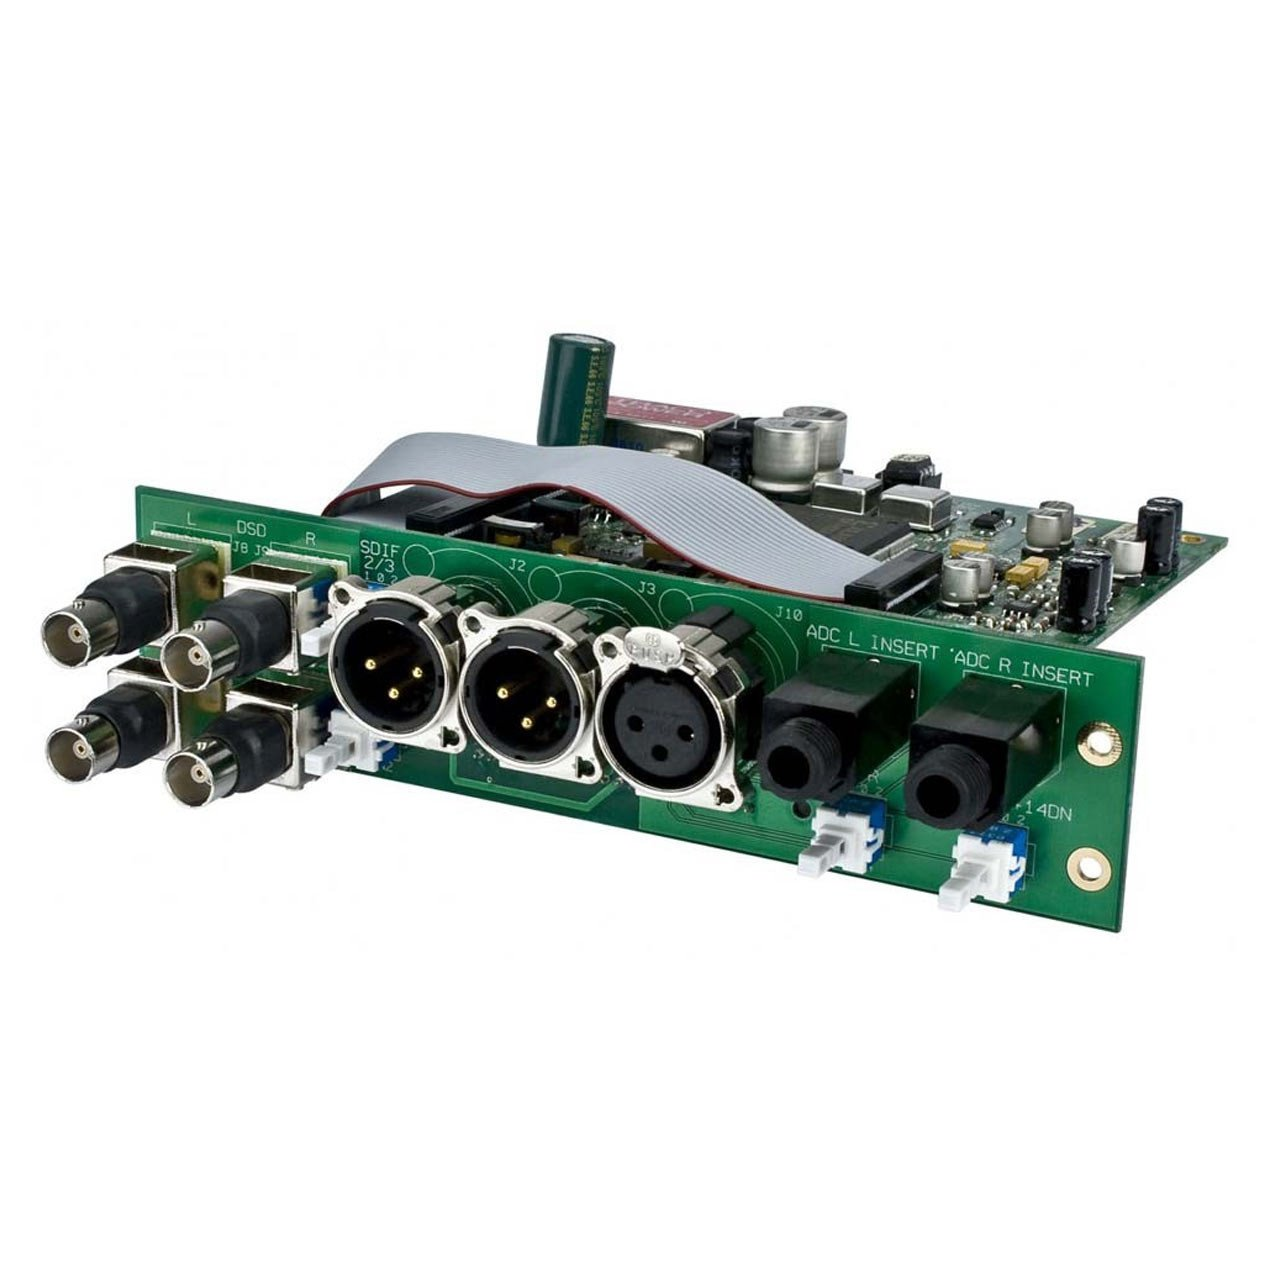 Outboard Accessories - Neve AMS 8816 ADC Expansion Card